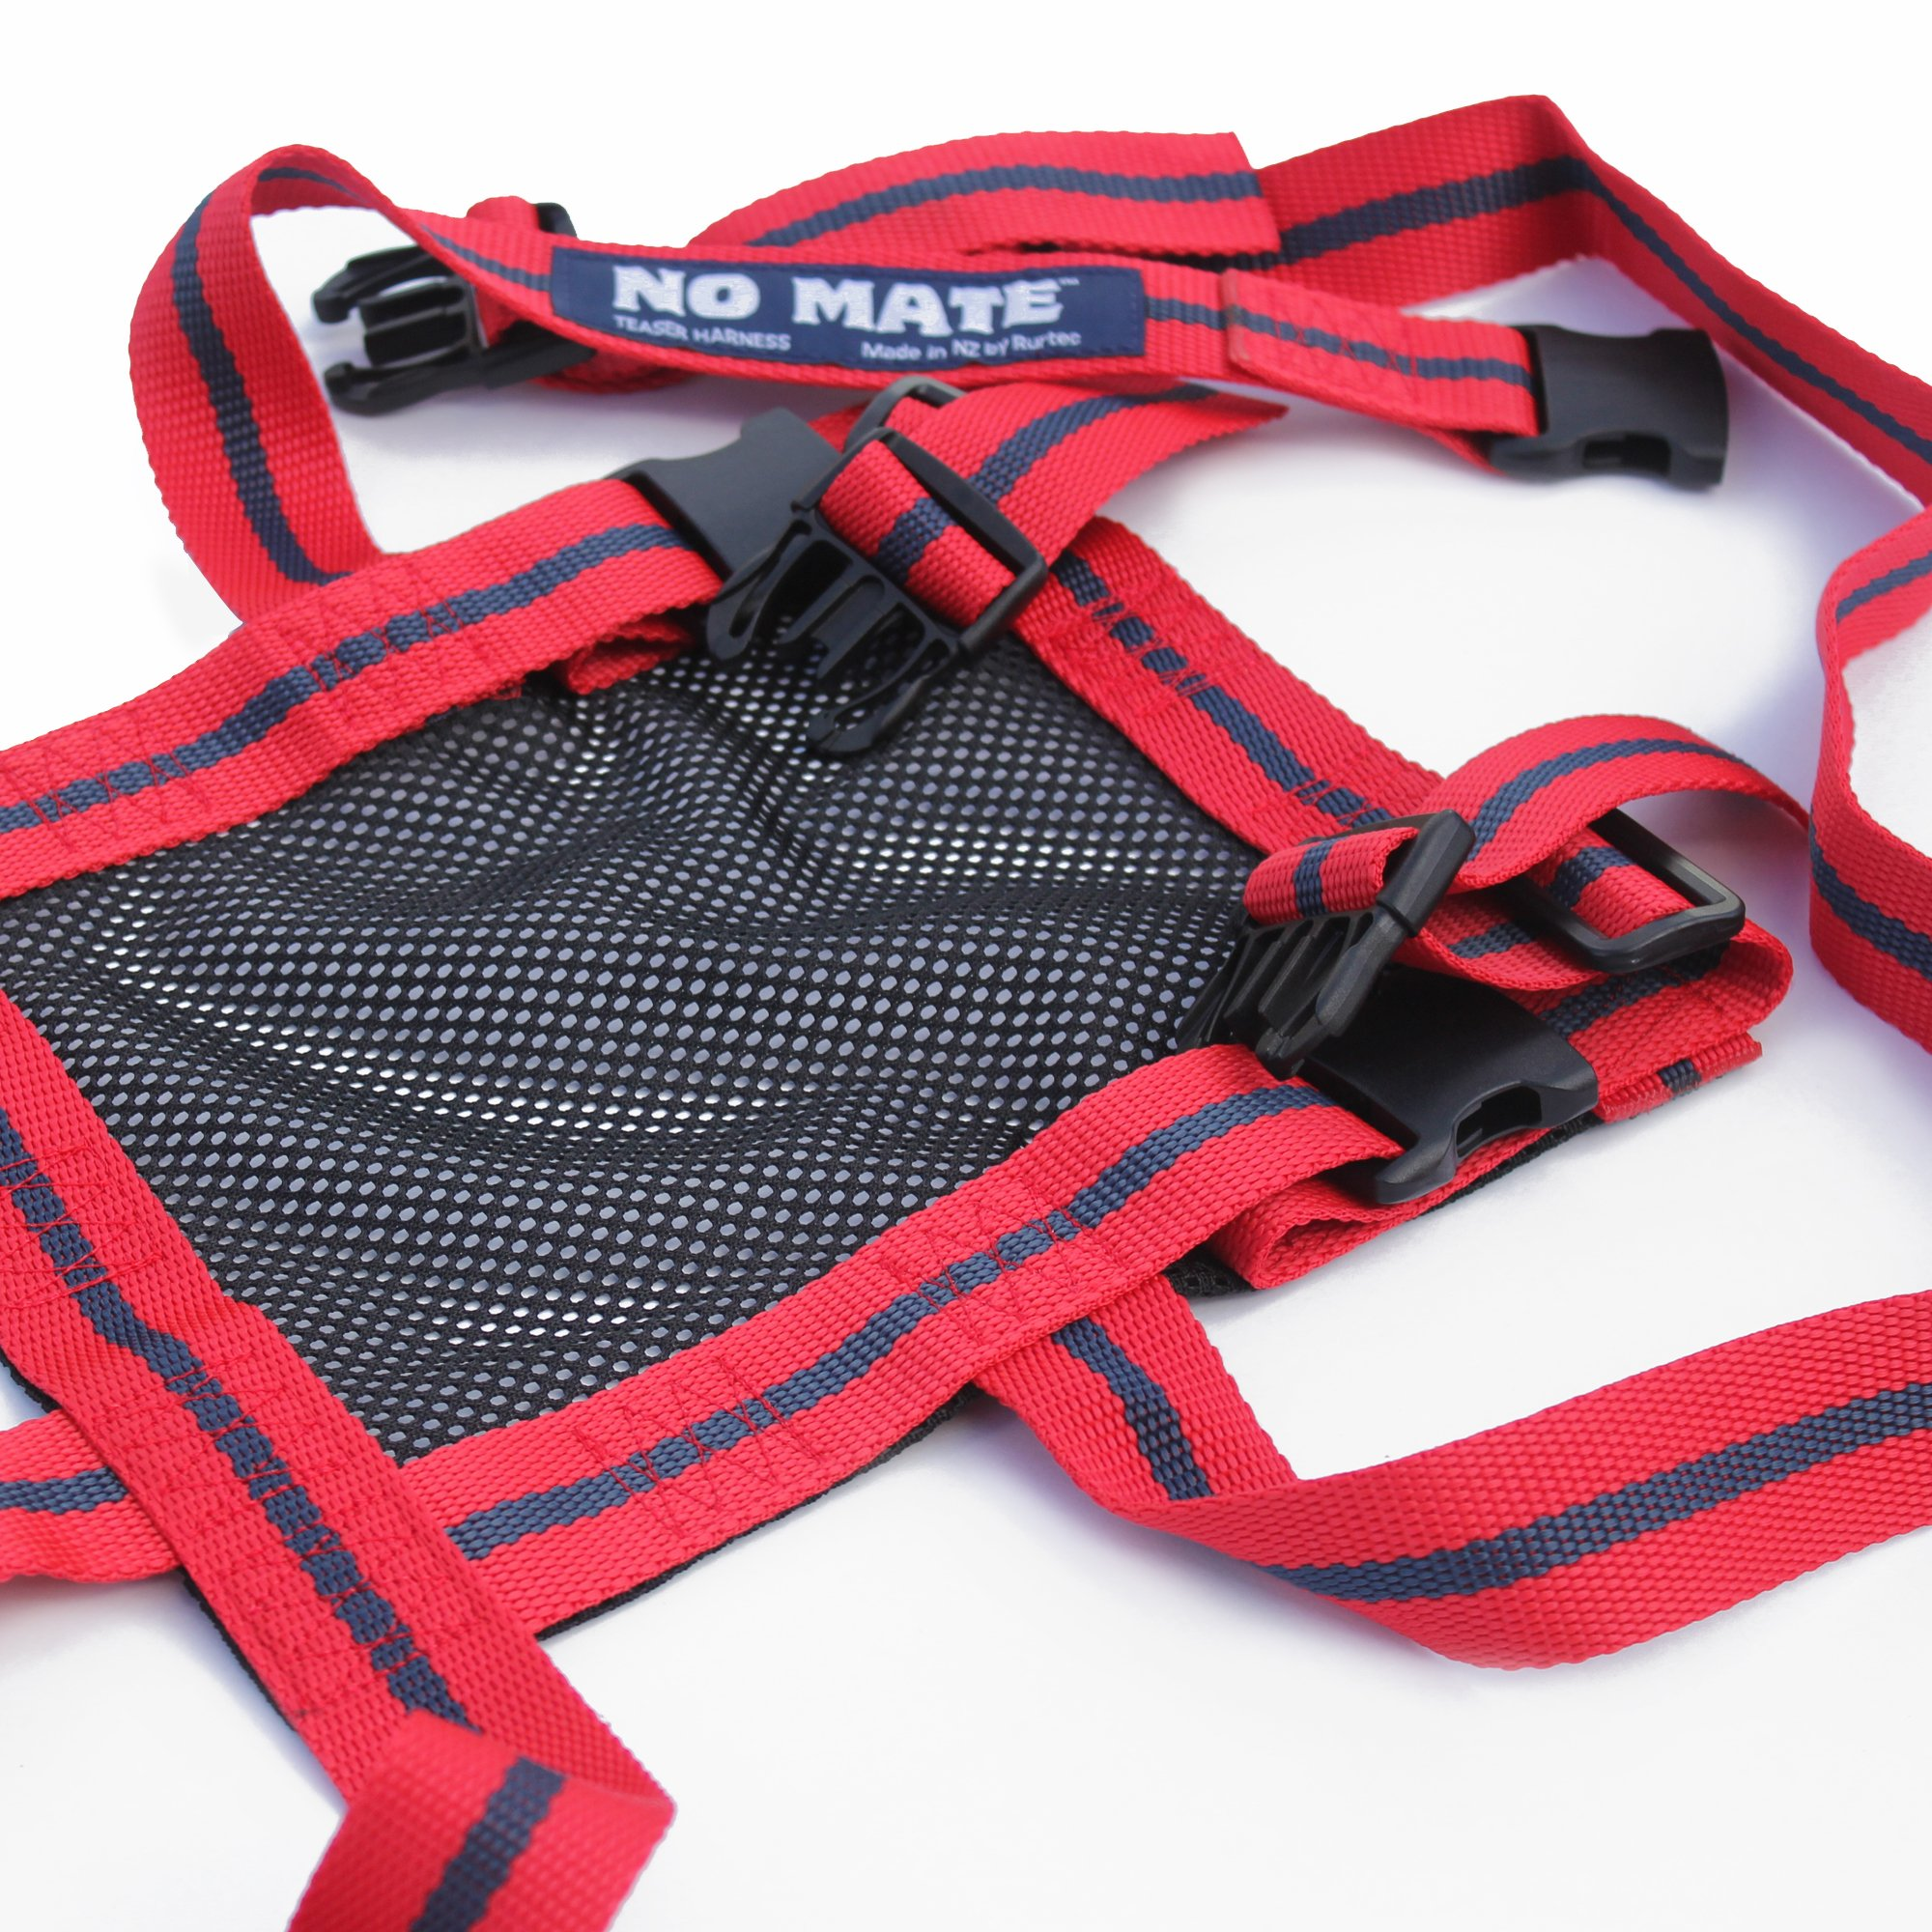 NO MATE Teaser Harness by Rurtec, Sheep & Goat Breeding Tool, Made in New Zealand - Requires a MATINGMARK Harness for use